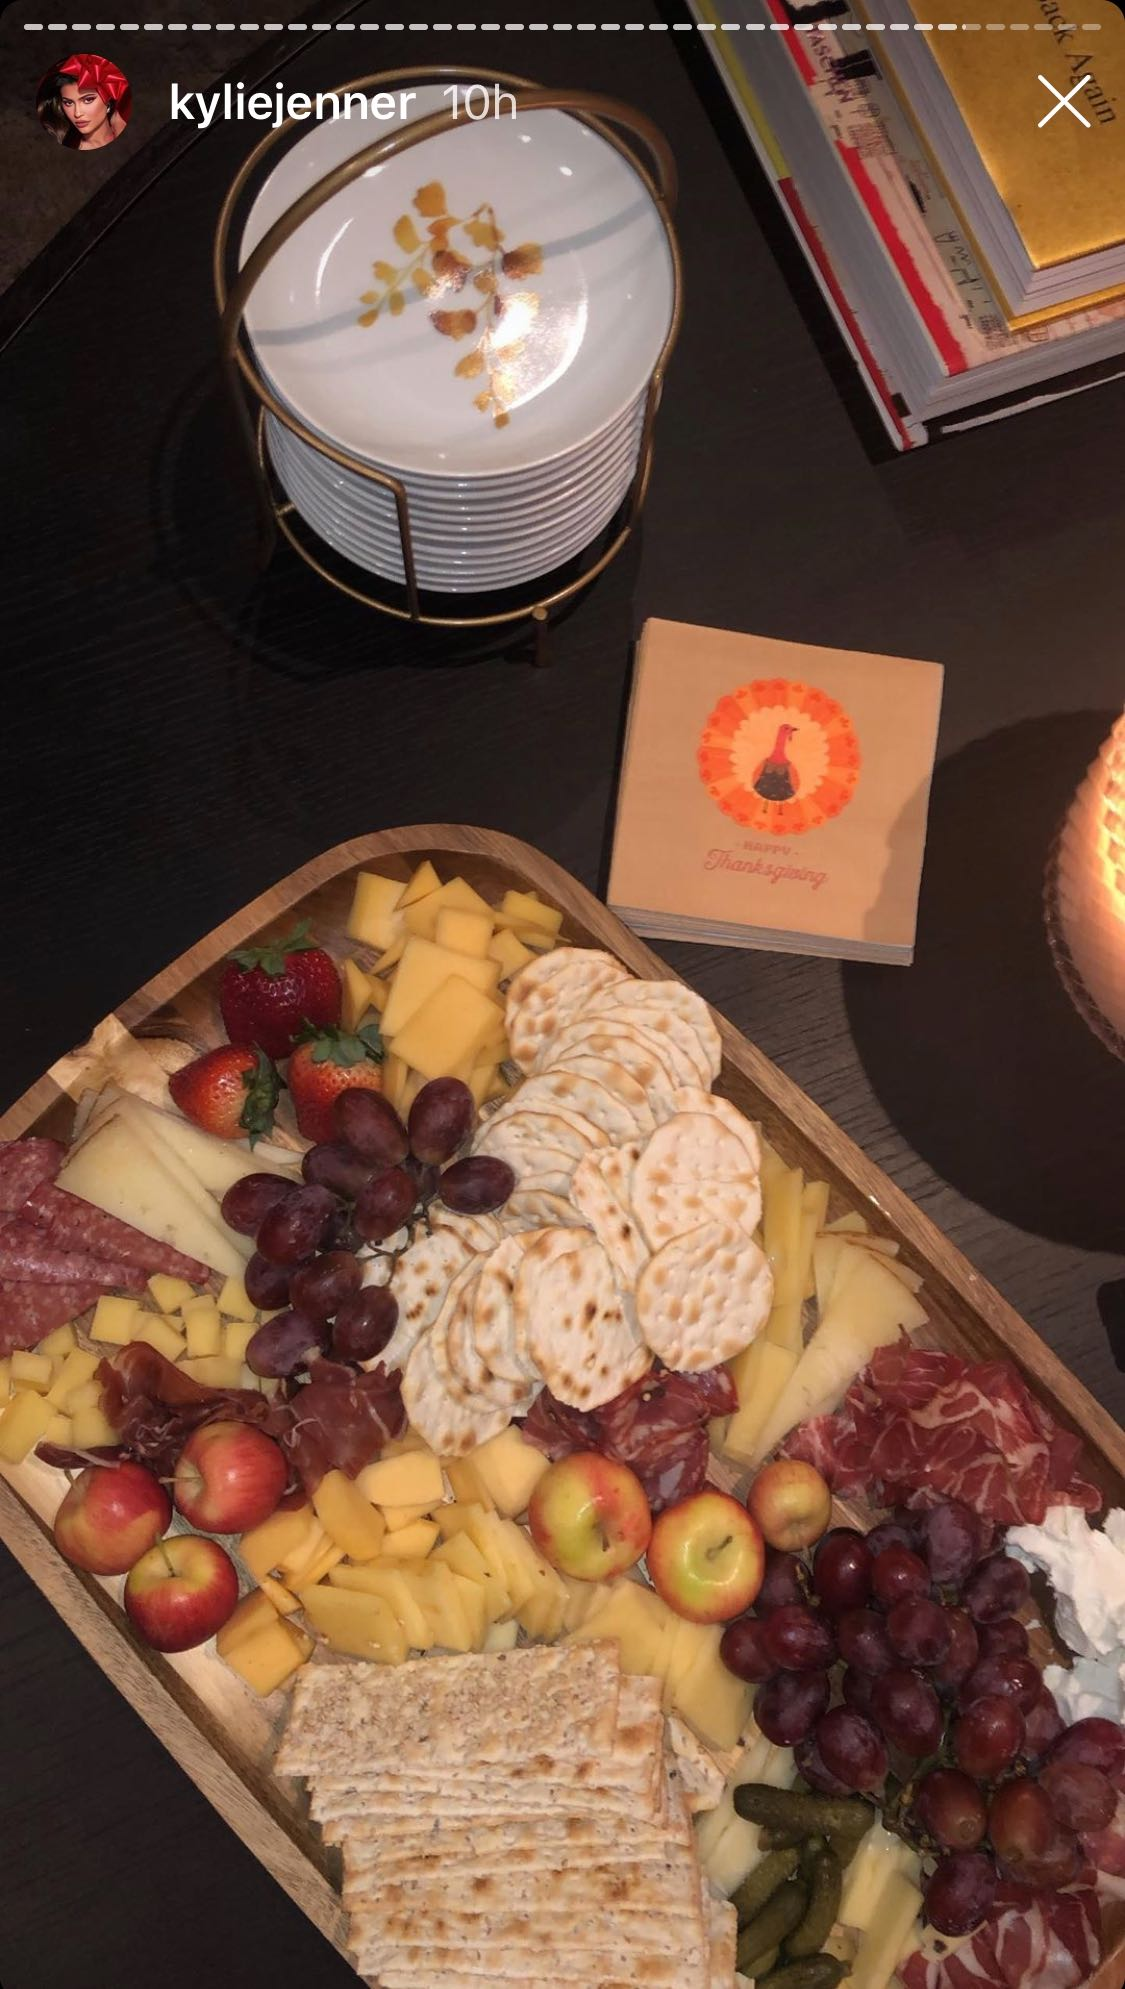 Kylie Jenner's luscious spread for her Friendship guests/ Source: Instagram/ KylieJenner